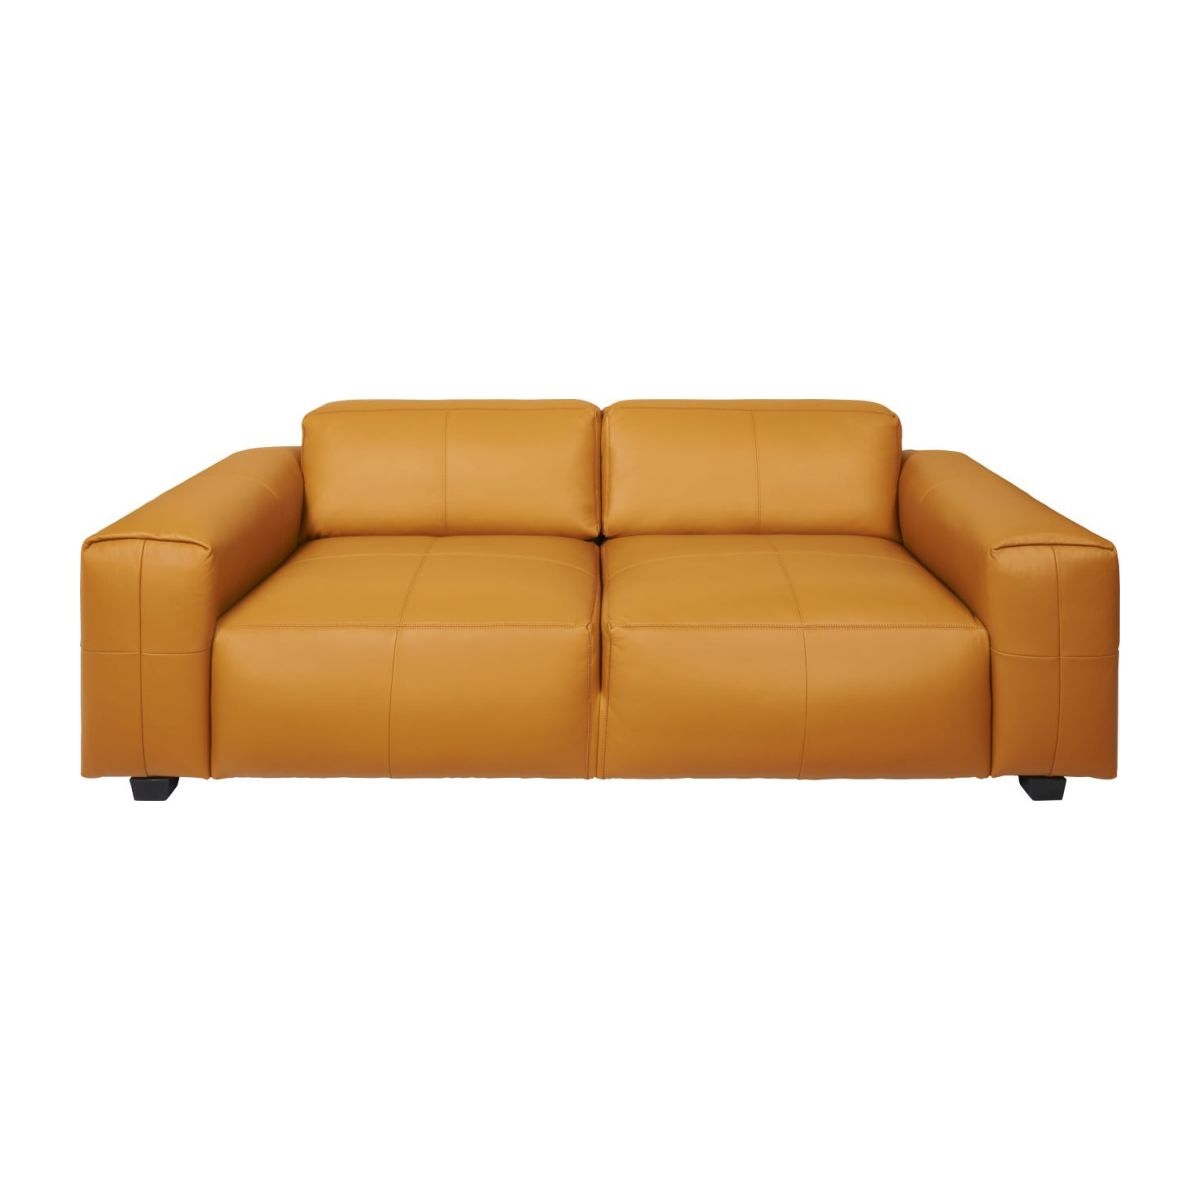 3 seater sofa in Savoy semi-aniline leather, cognac n°2